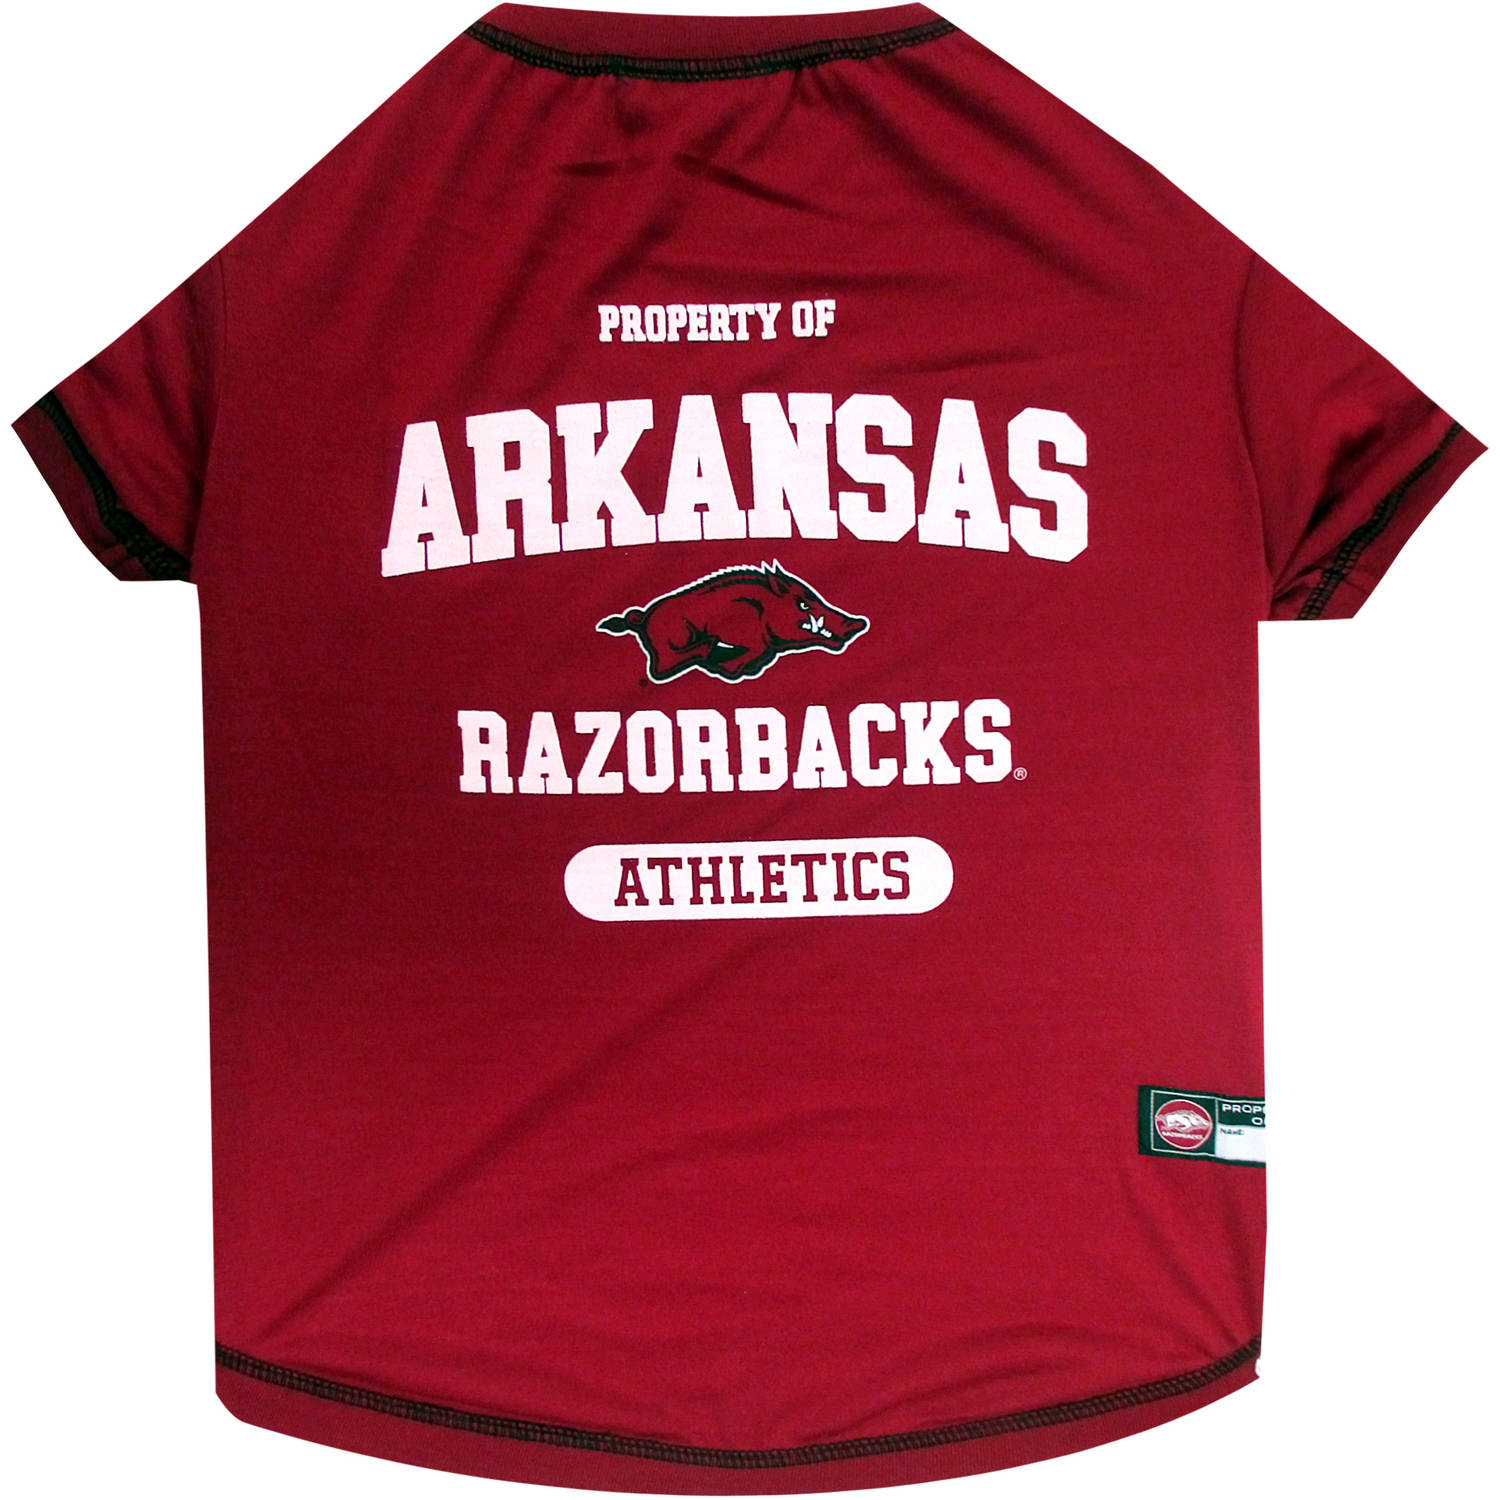 Pets First Collegiate Arkansas Razorbacks Pet T-shirt, Assorted Sizes